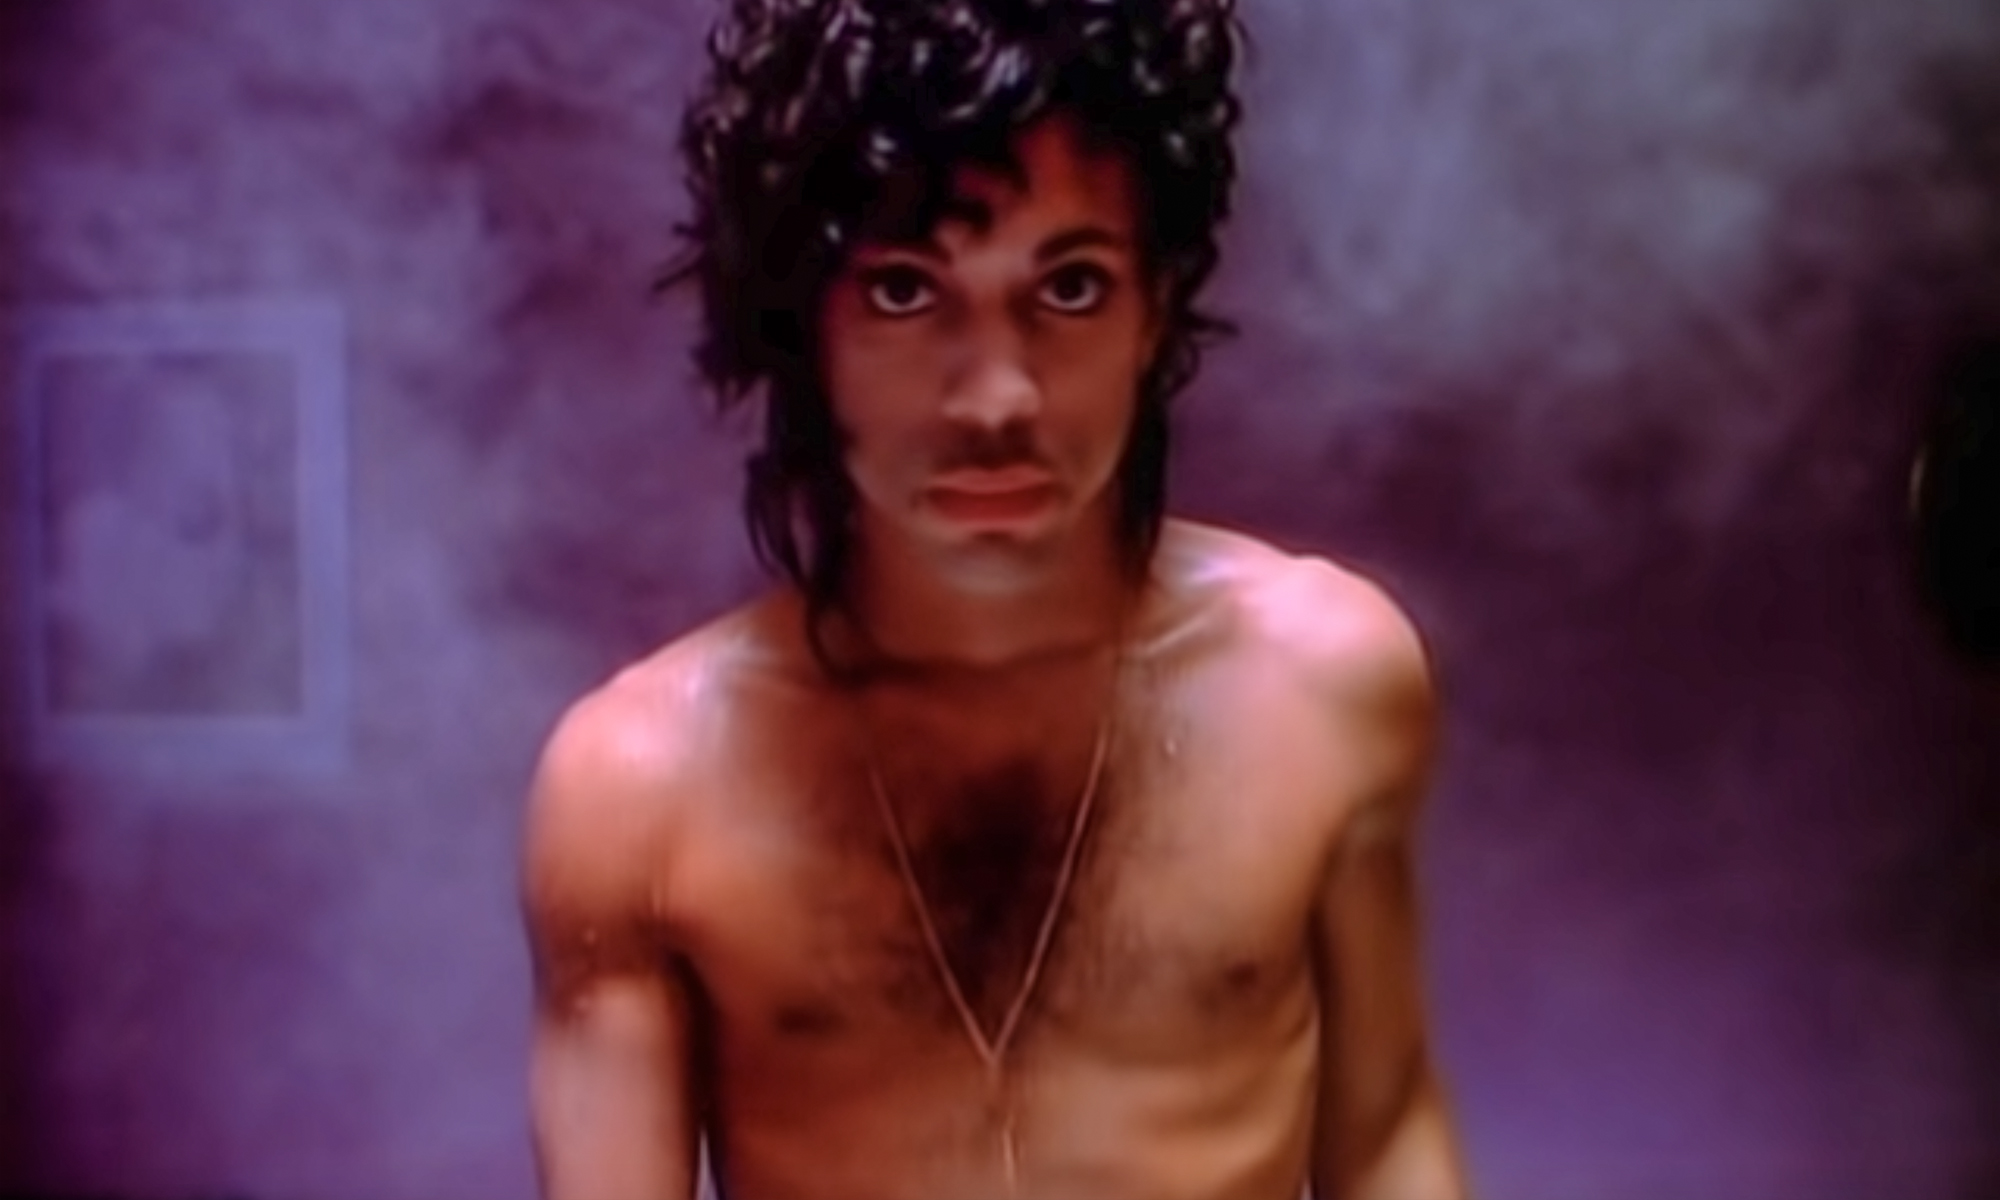 """A screenshot from Prince's music video """"When Doves Cry."""""""